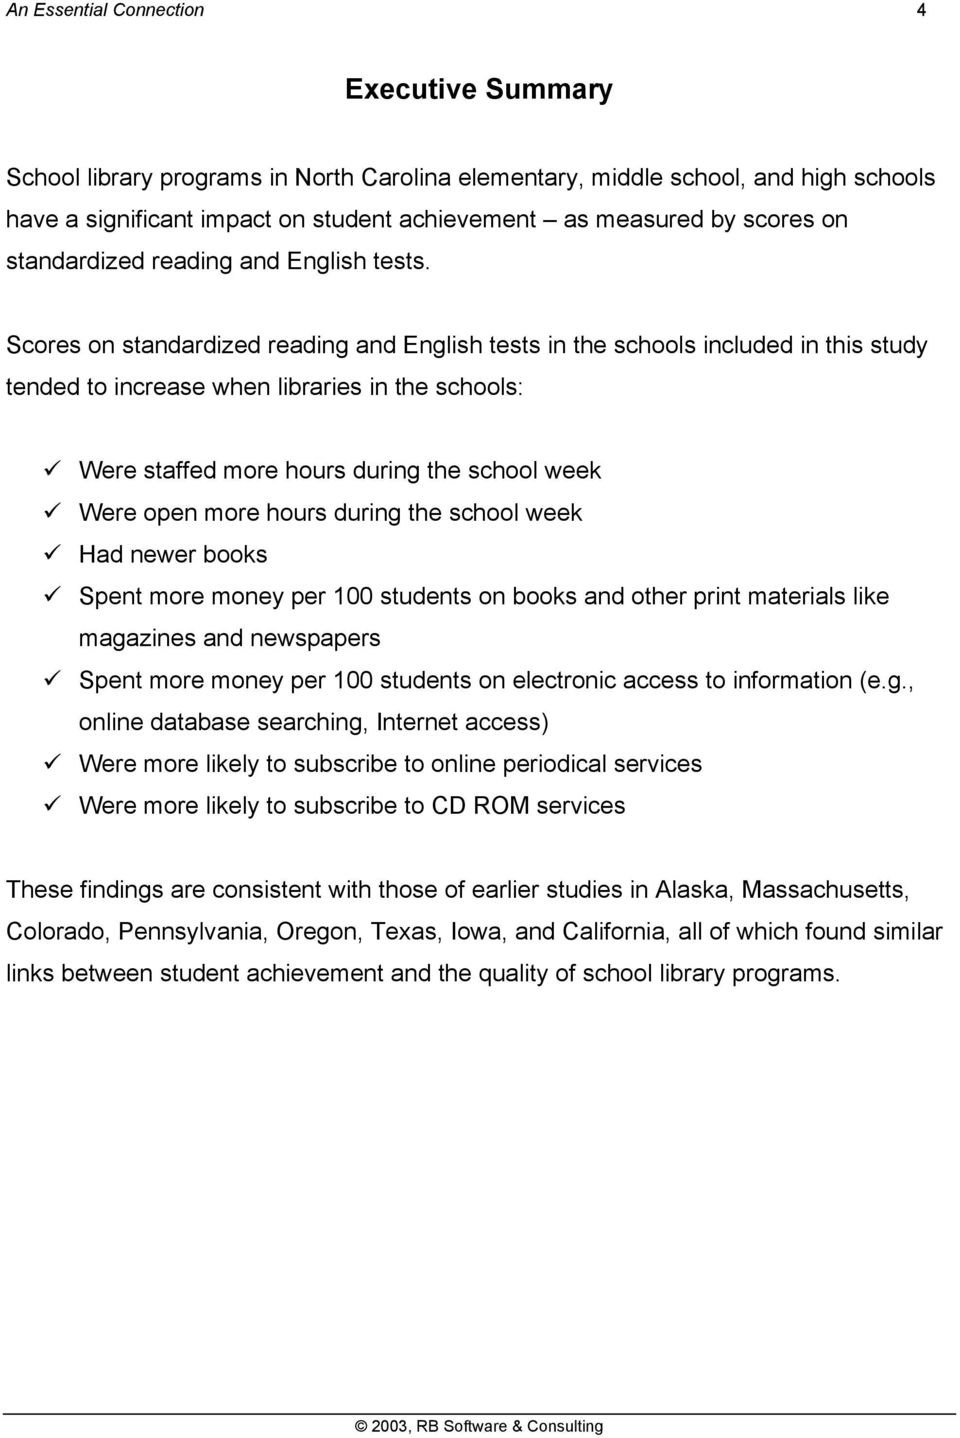 Scores on standardized reading and English tests in the schools included in this study tended to increase when libraries in the schools: Were staffed more hours during the school week Were open more